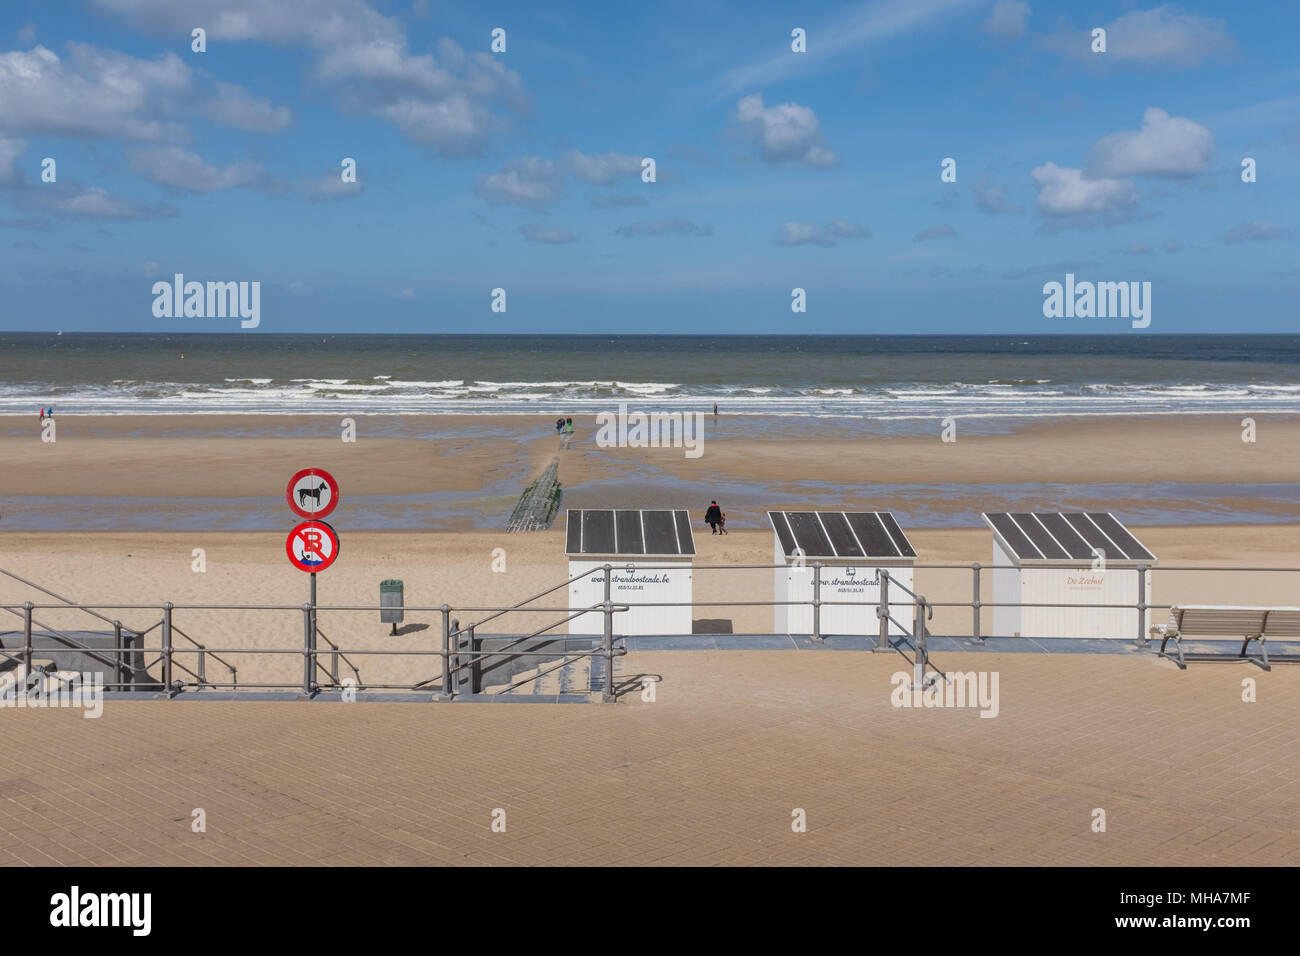 View from Casino building down onto beach of Oostende in Belgium - Stock Image